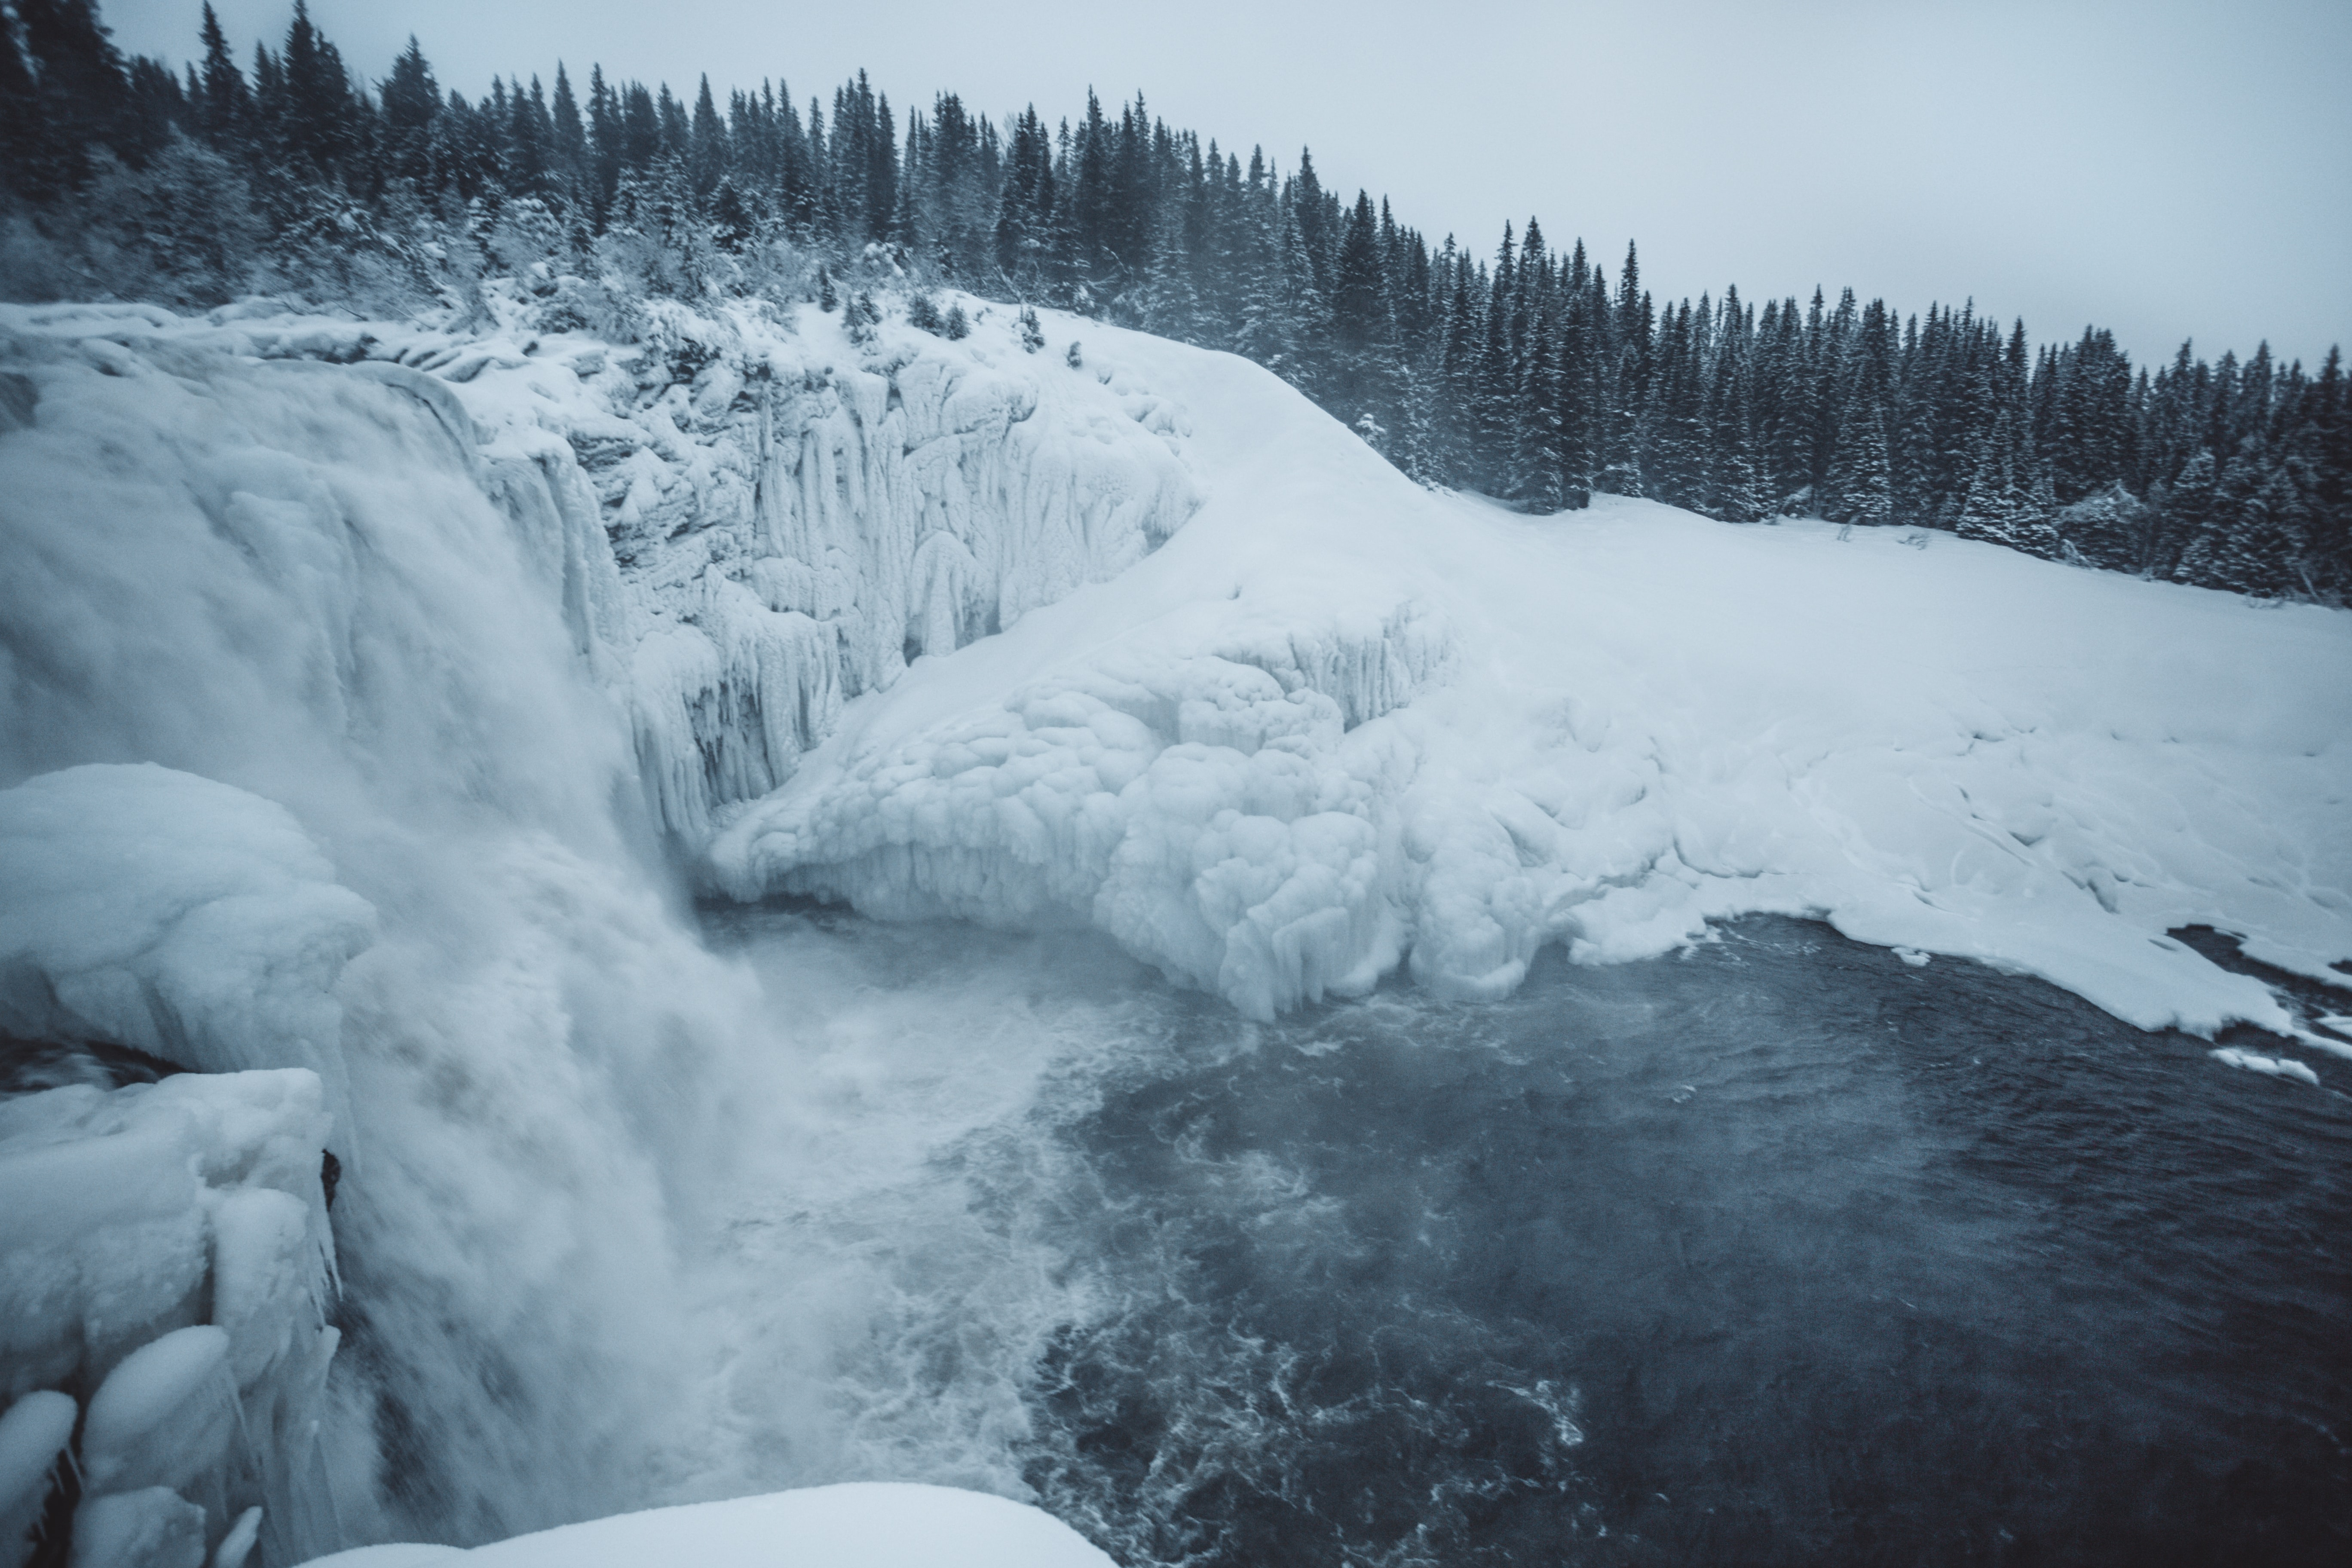 ice falls near the pine tree during daytime